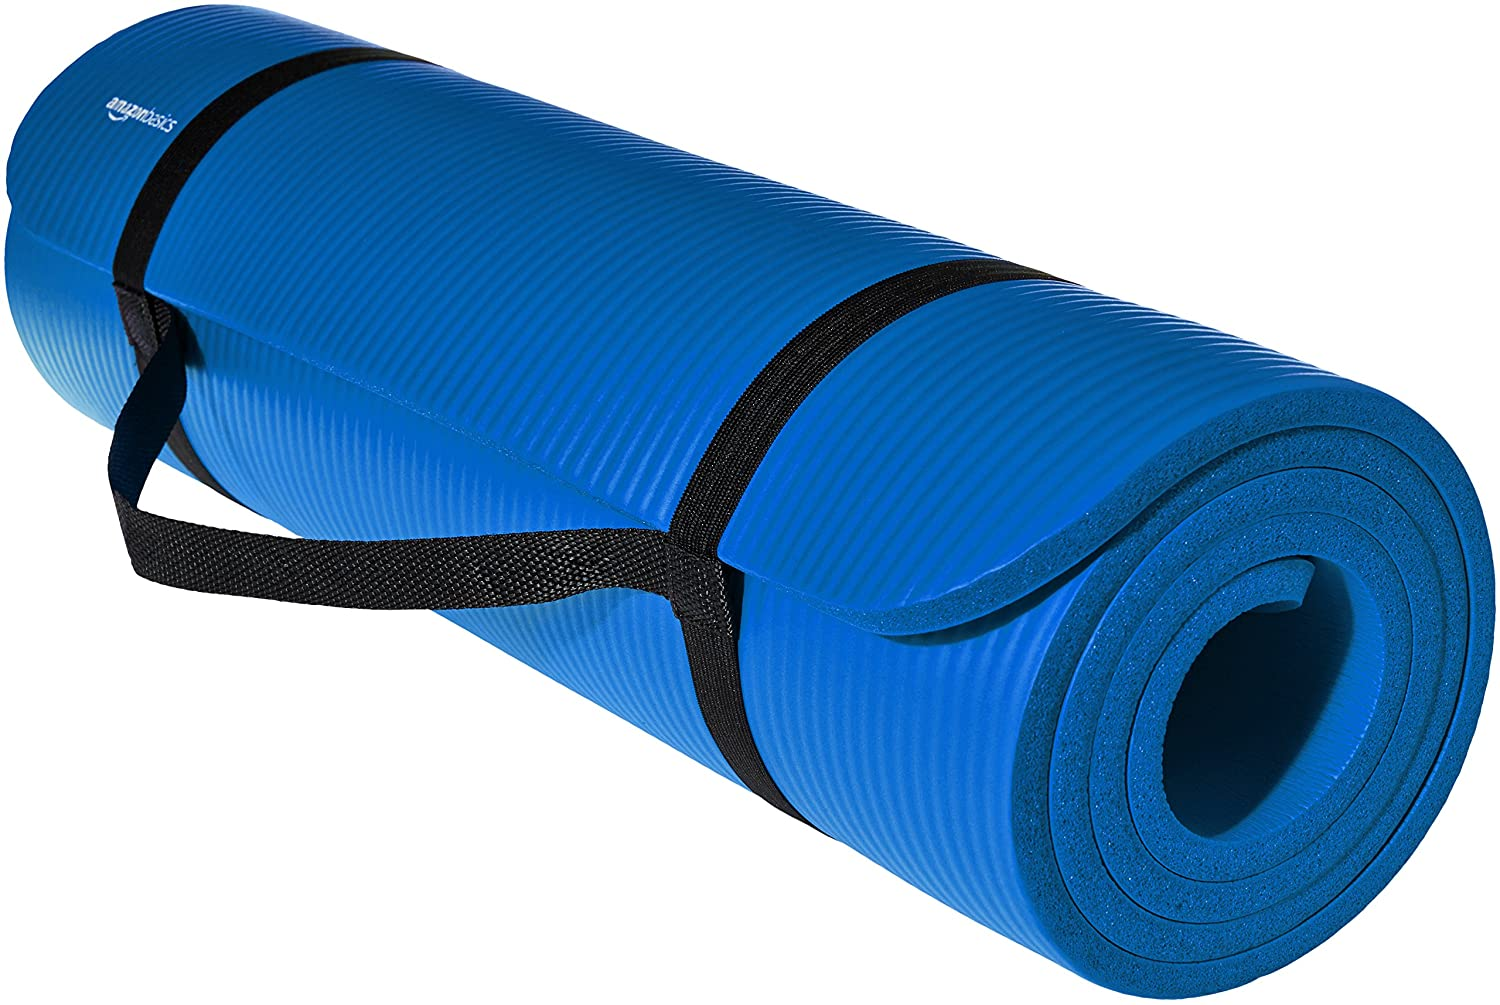 AmazonBasics 13mm Extra Thick Yoga Mat